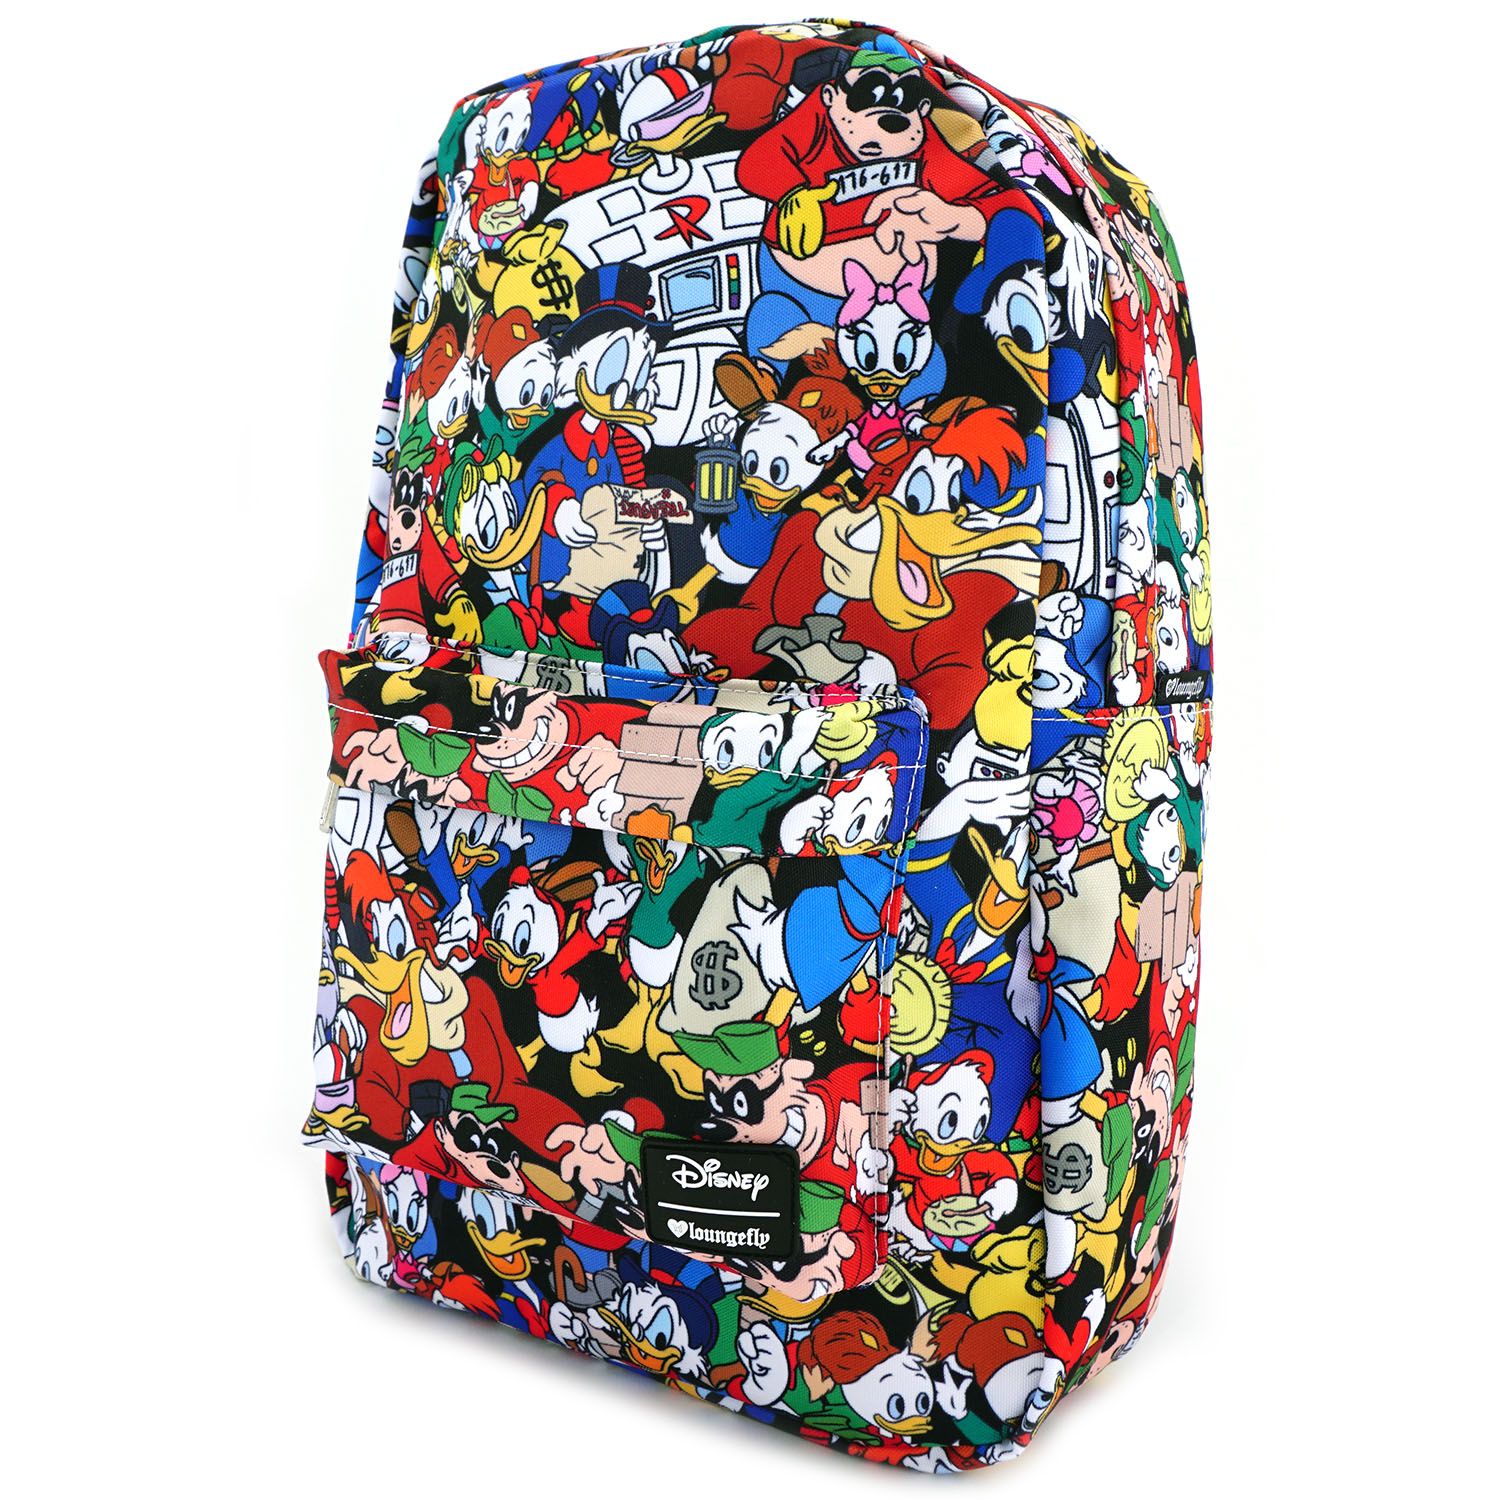 5be74072b6 Loungefly x Duck Tales Characters AOP Print Backpack 671803264878